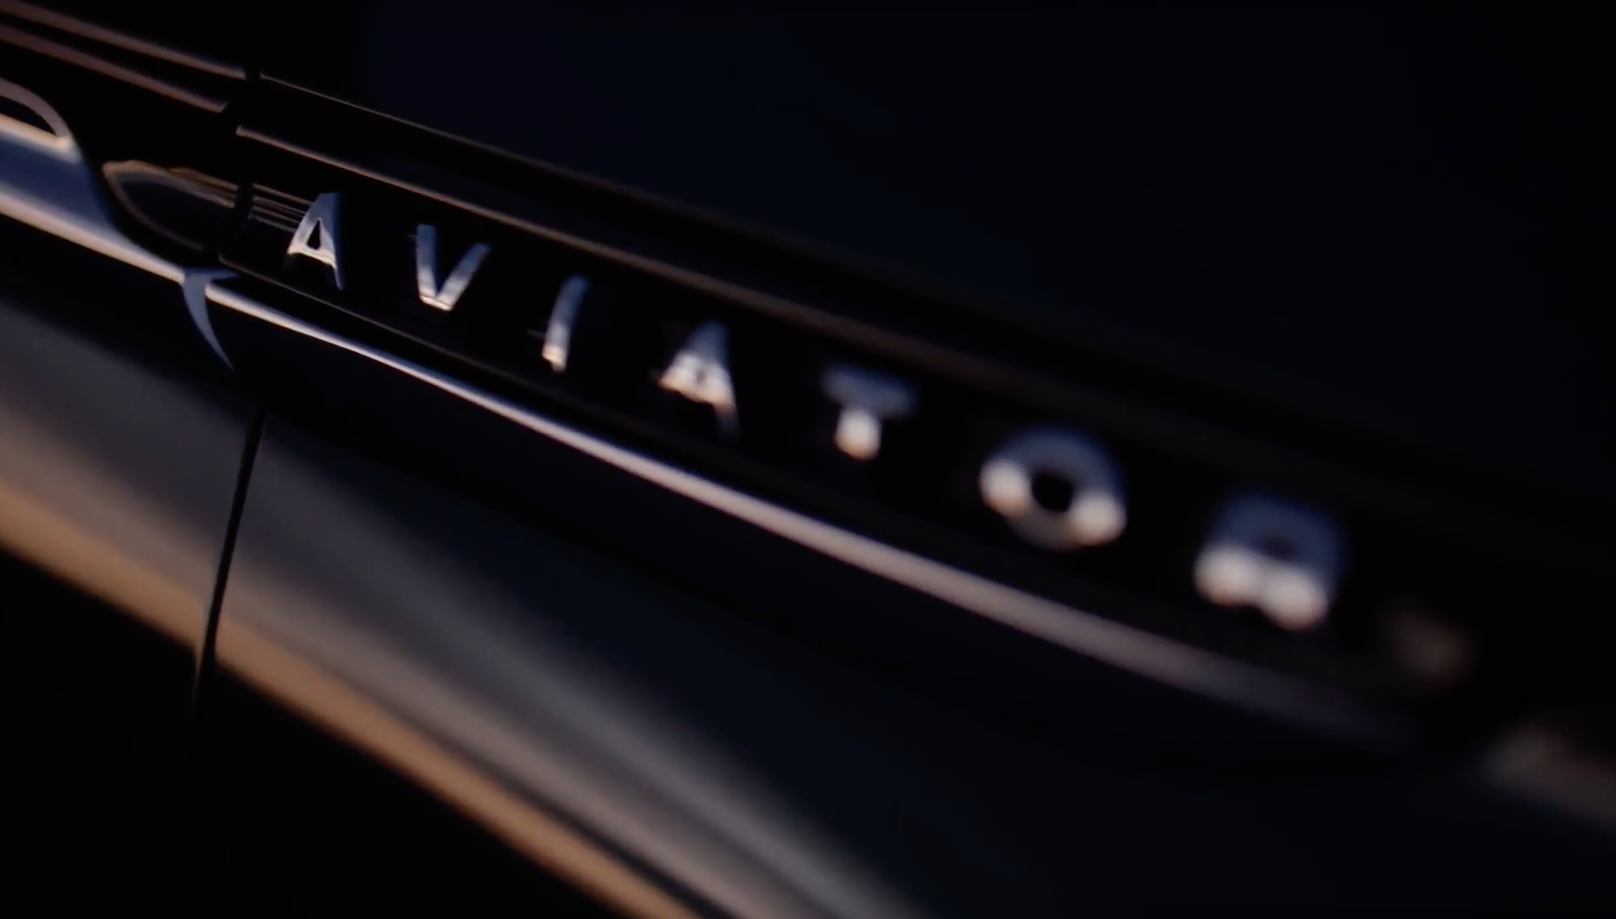 2020 Lincoln Aviator Teaser Images